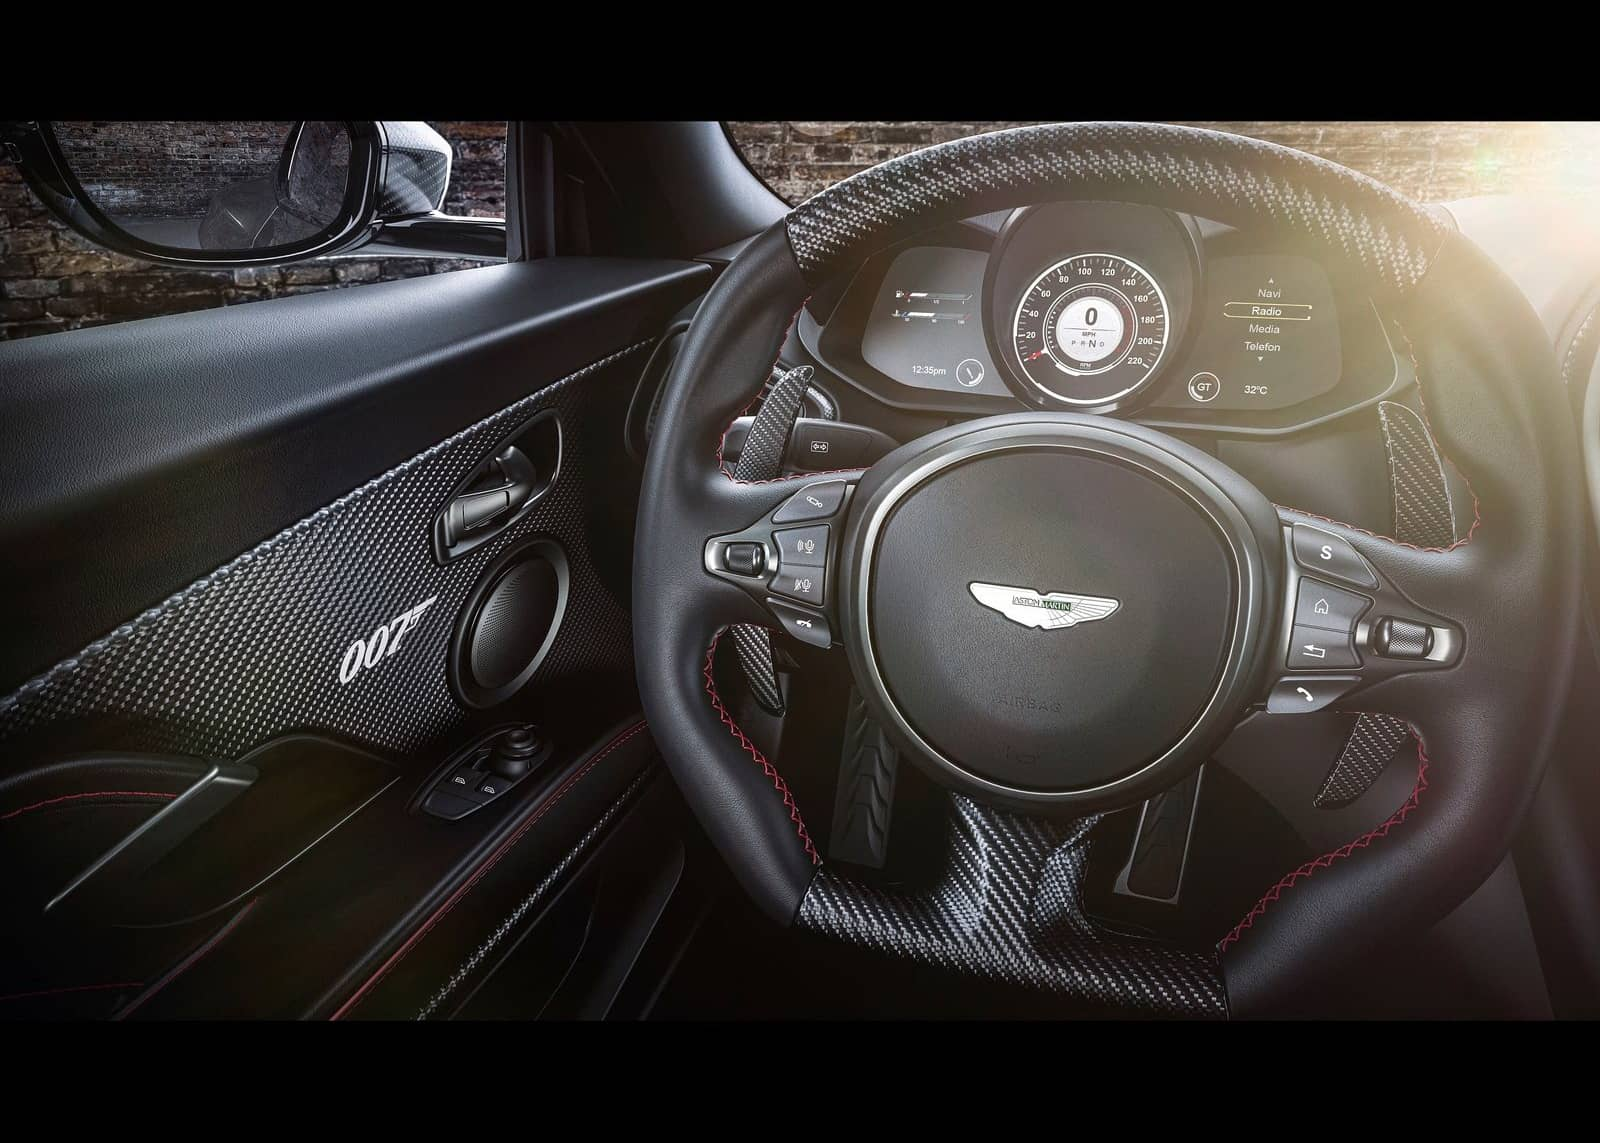 Aston Martin DBS Superleggera 007 Edition-3